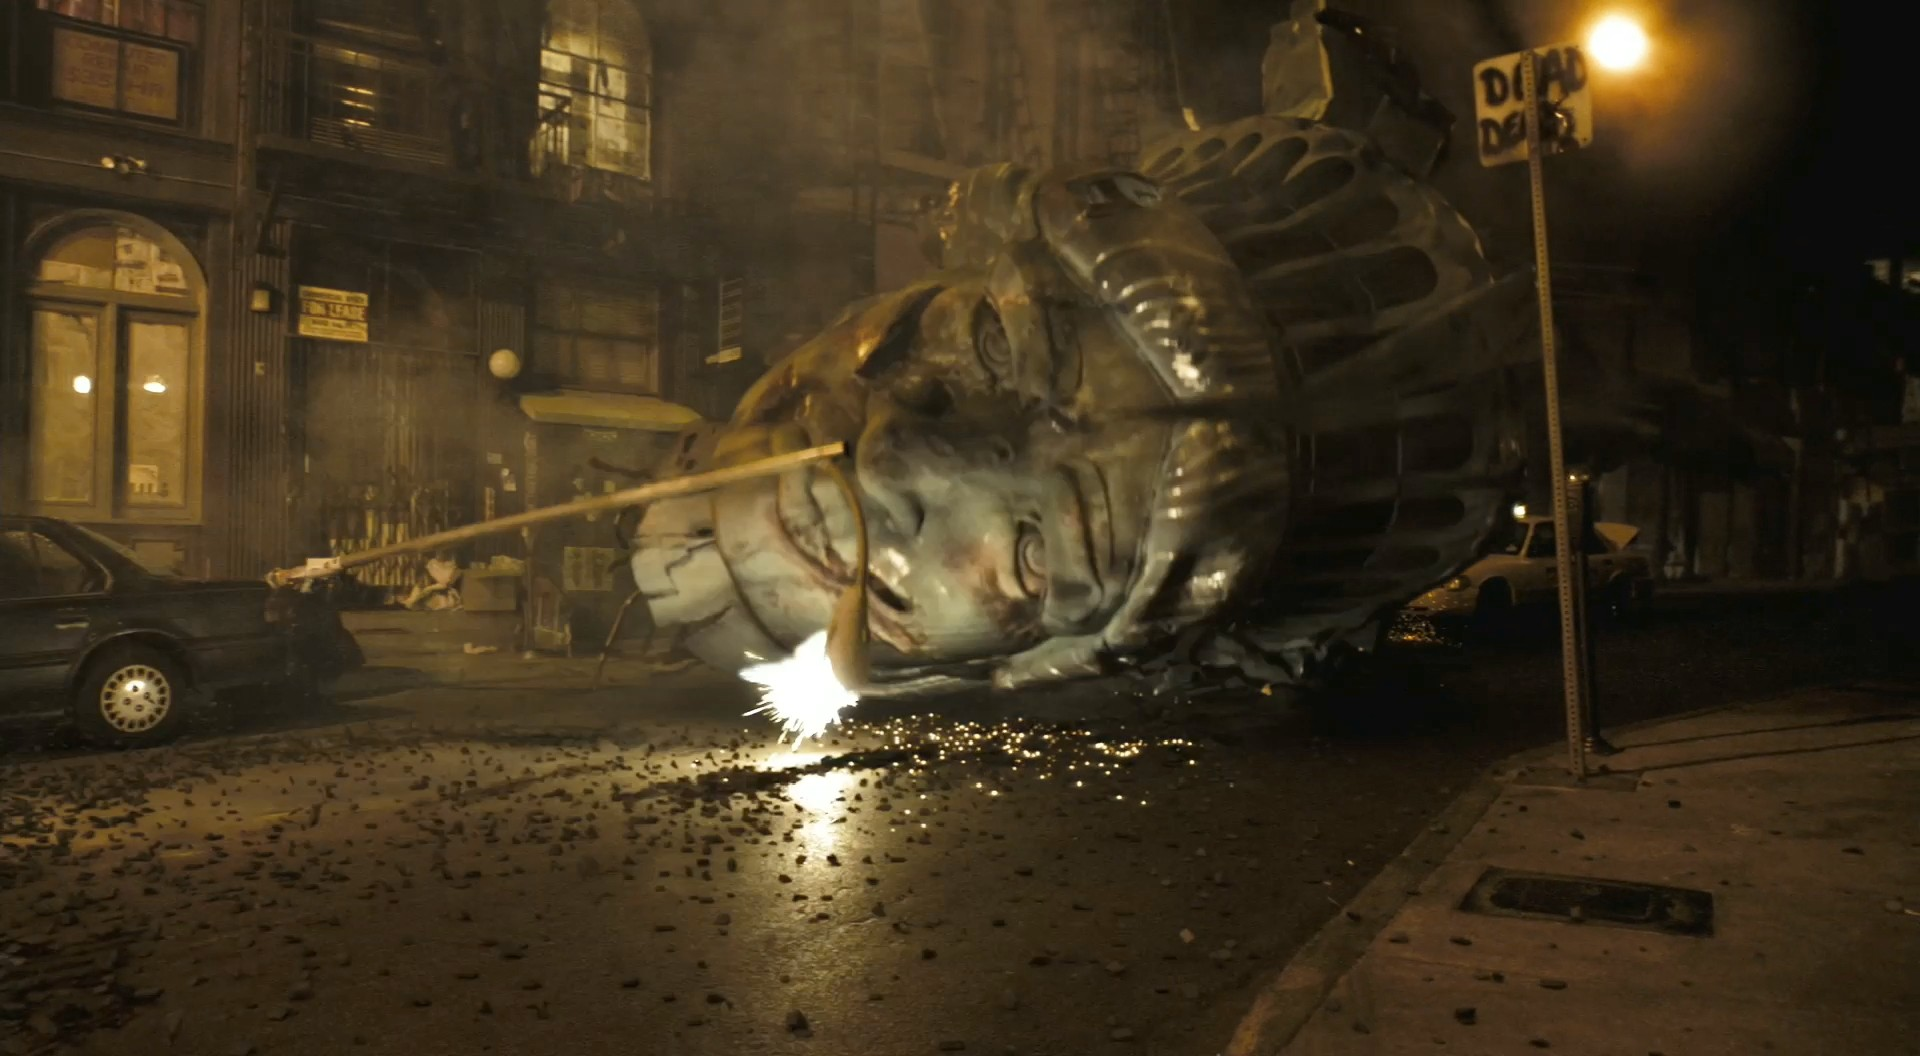 The severed head of the Statue of Liberty in Cloverfield (2008)